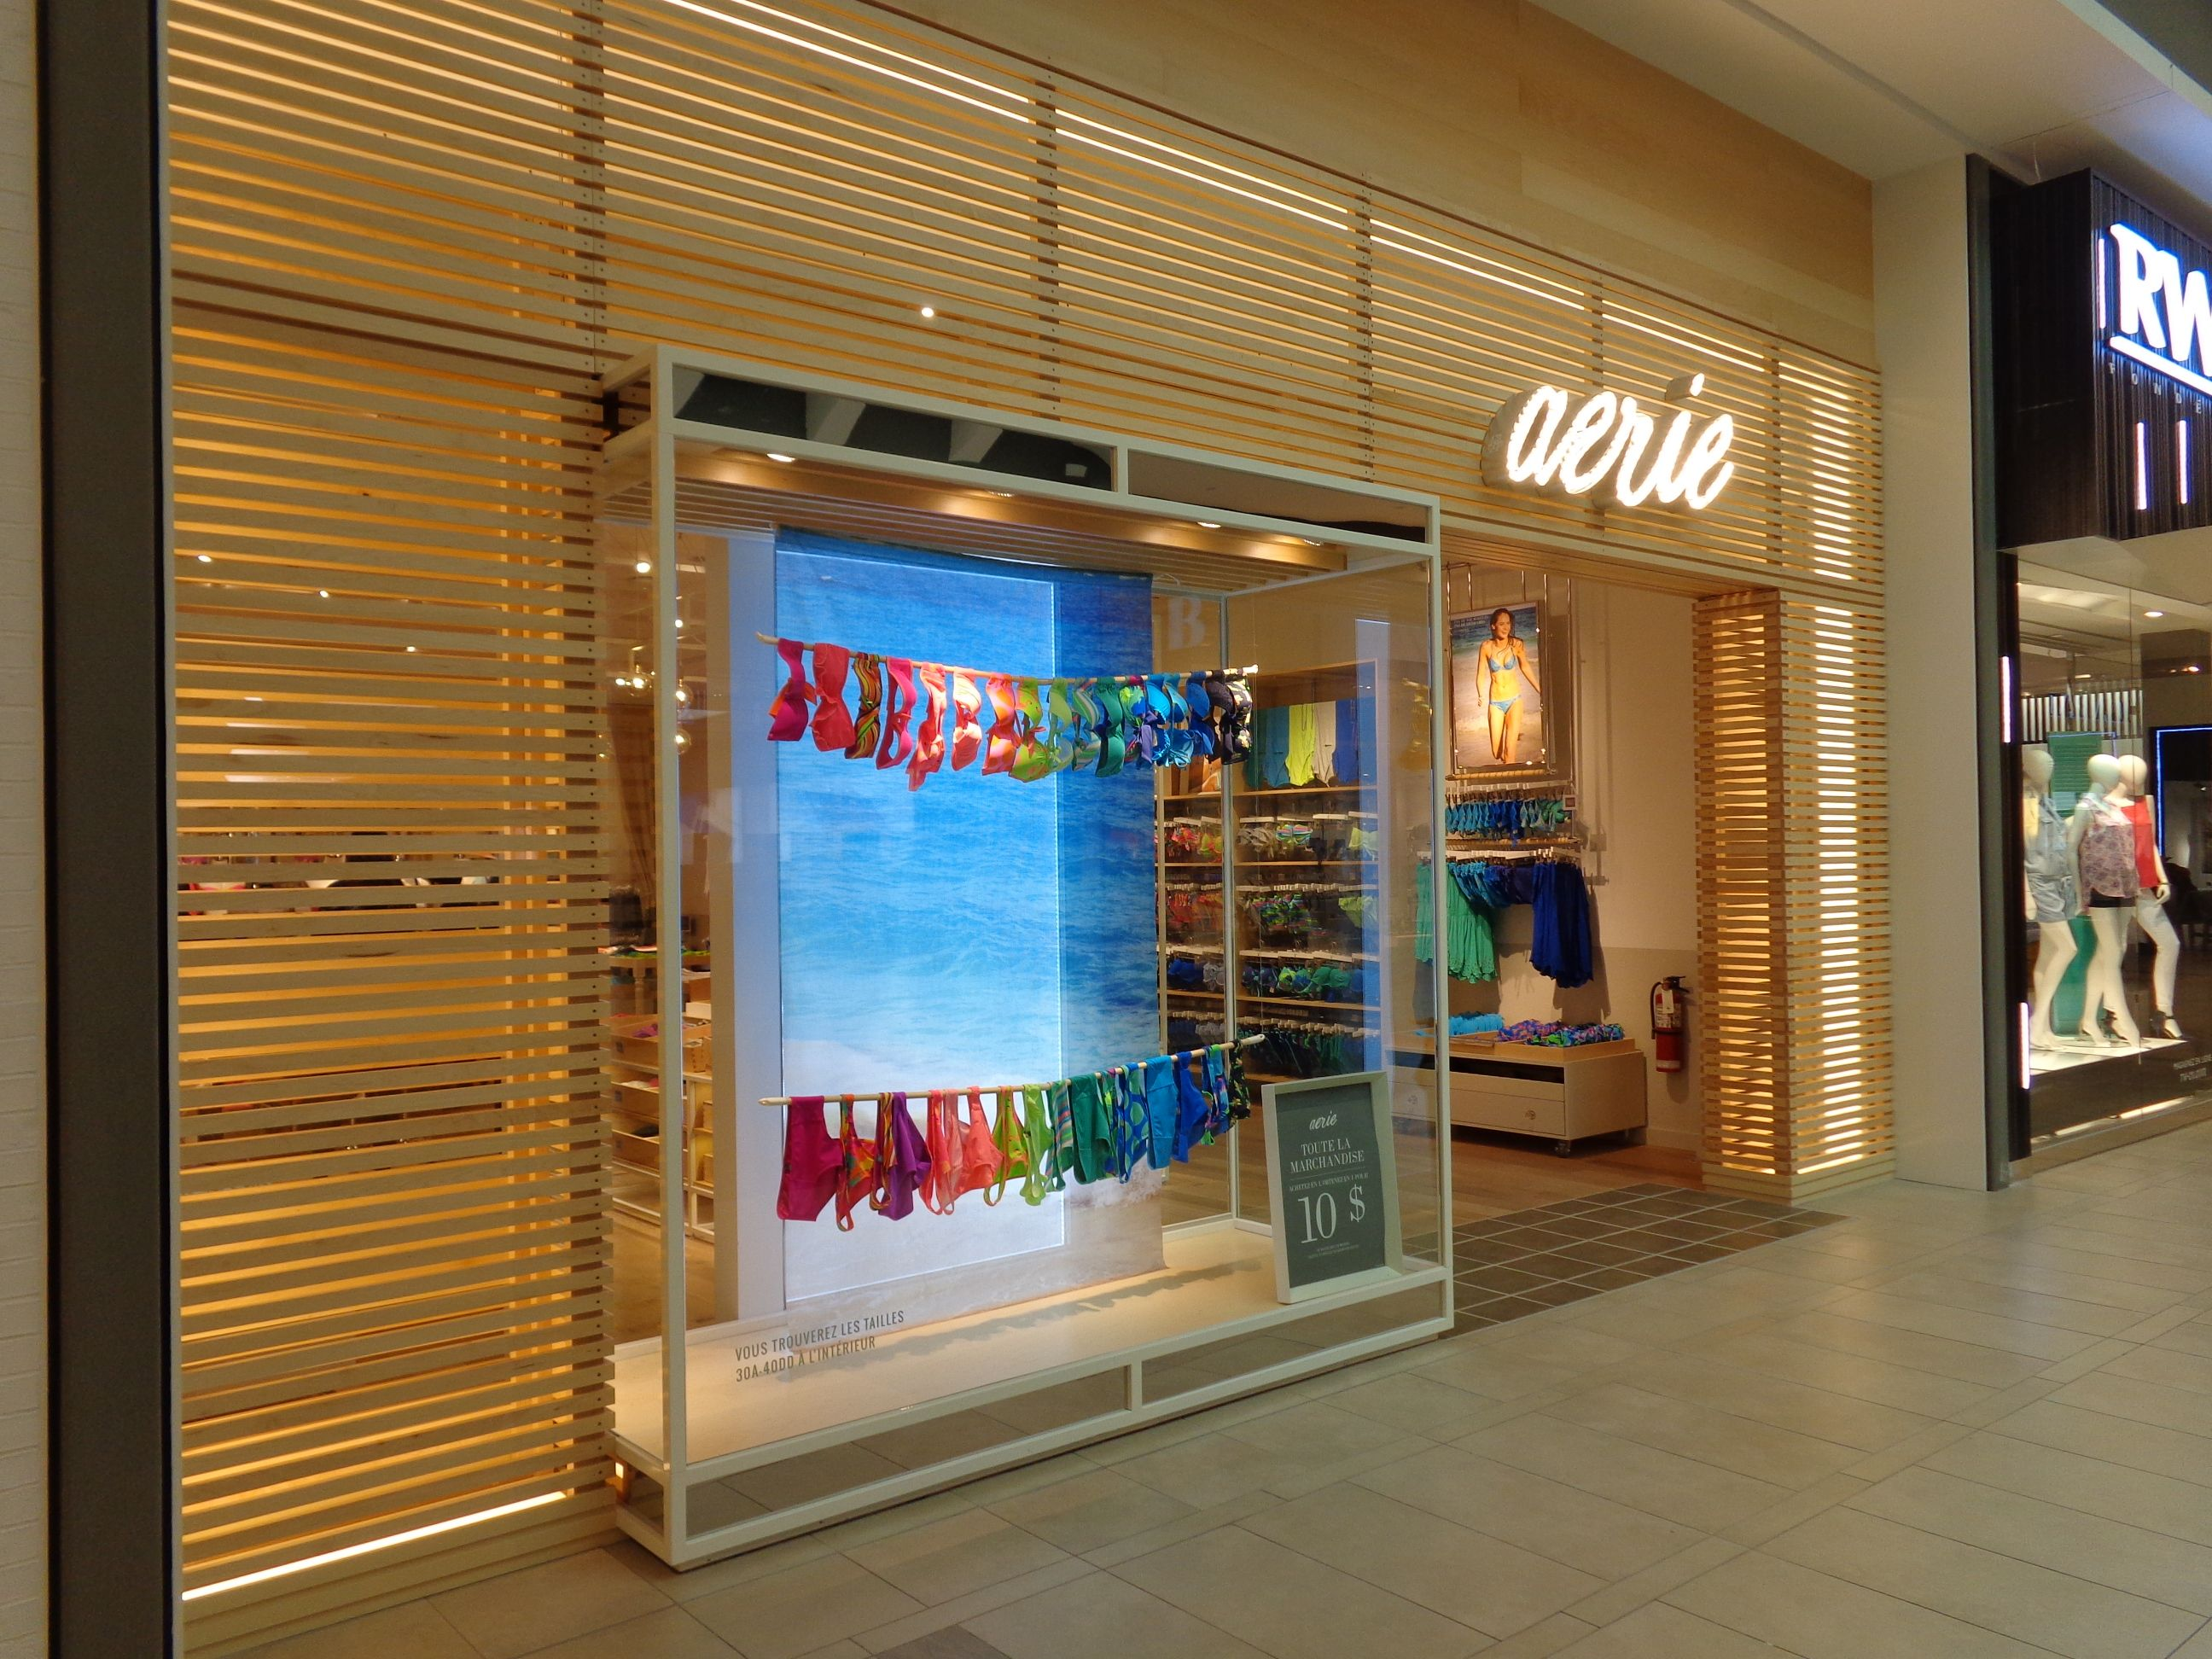 New Aerie By American Eagle Store Concept In Laval Qc 28 05 2014